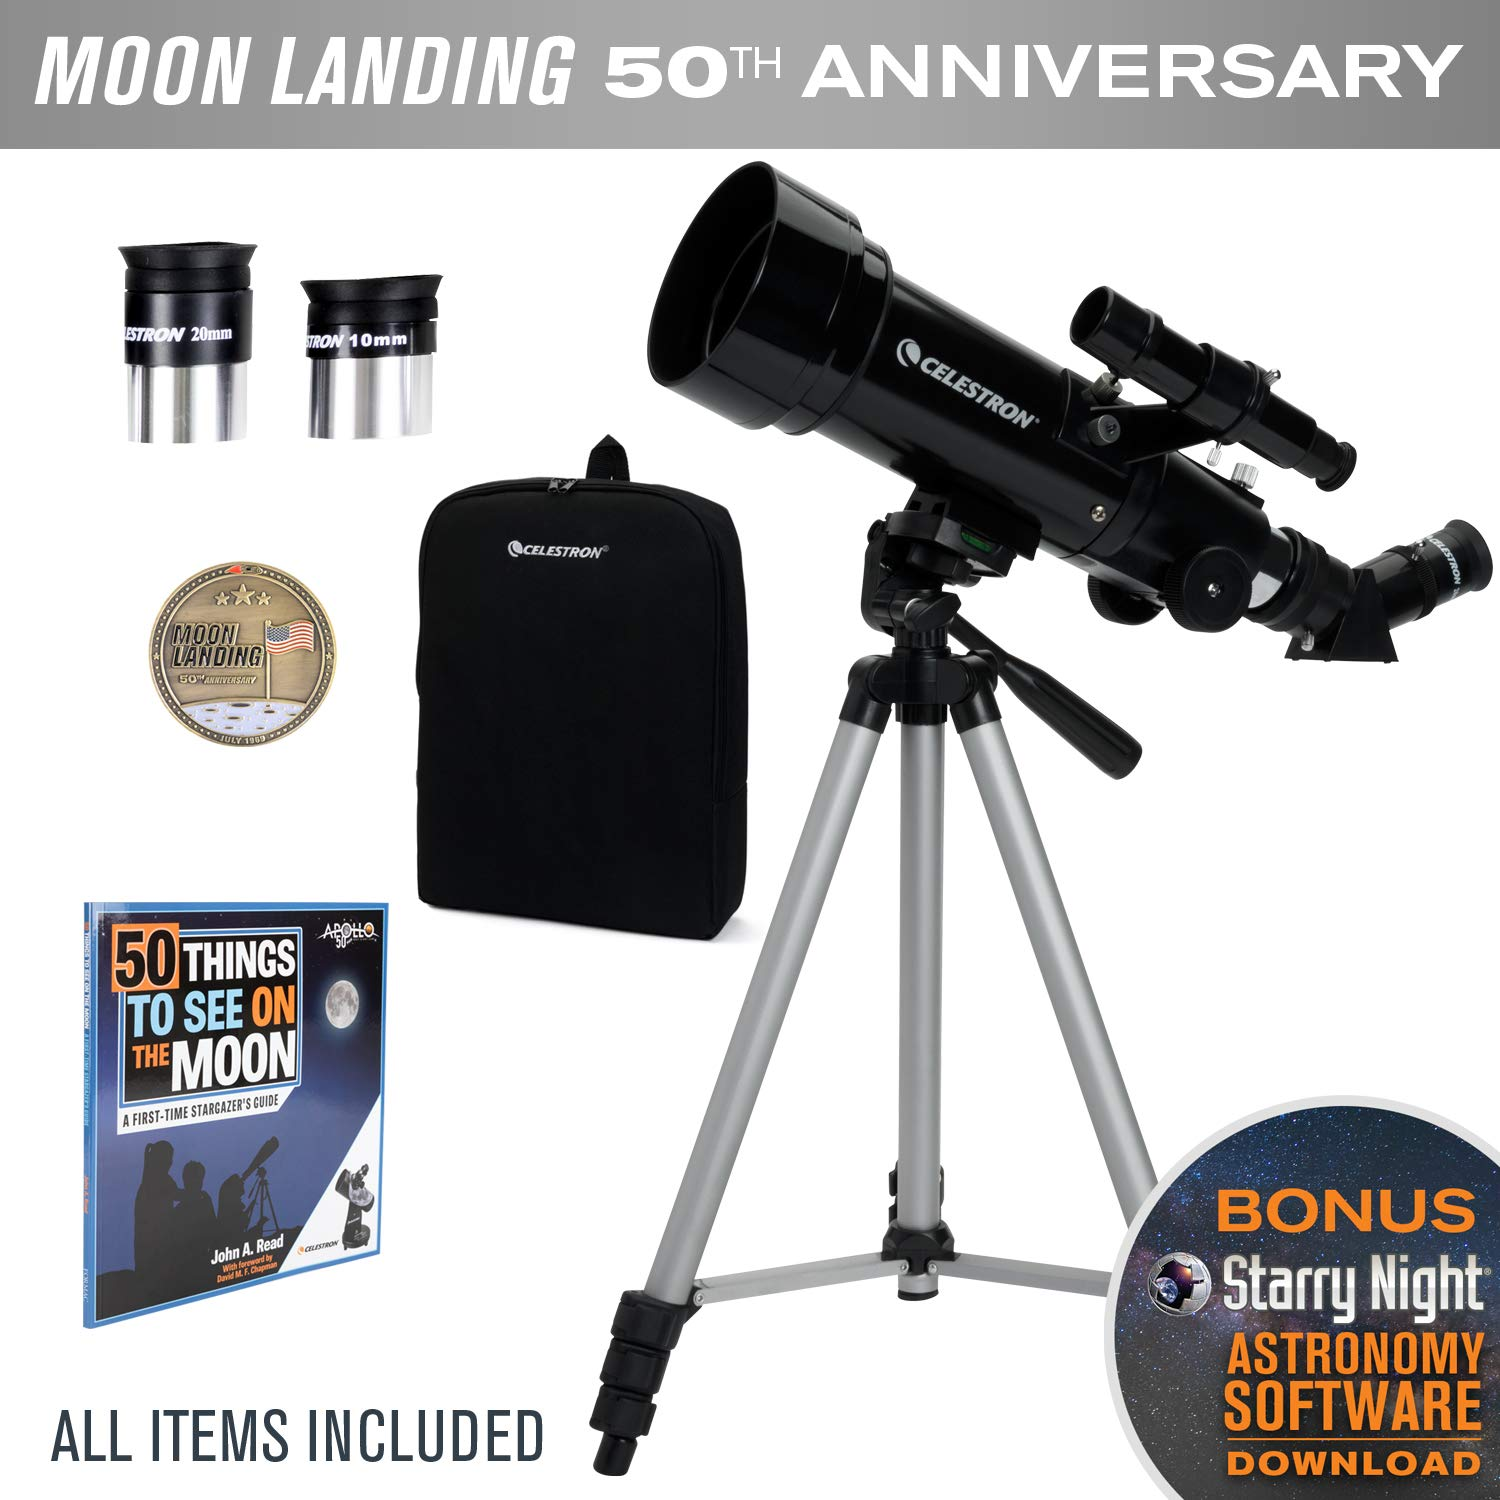 Celestron Travel Scope 70 Telescope - Limited Edition Apollo 11 50th Anniversary Bundle with Commemorative Coin and Book by Celestron